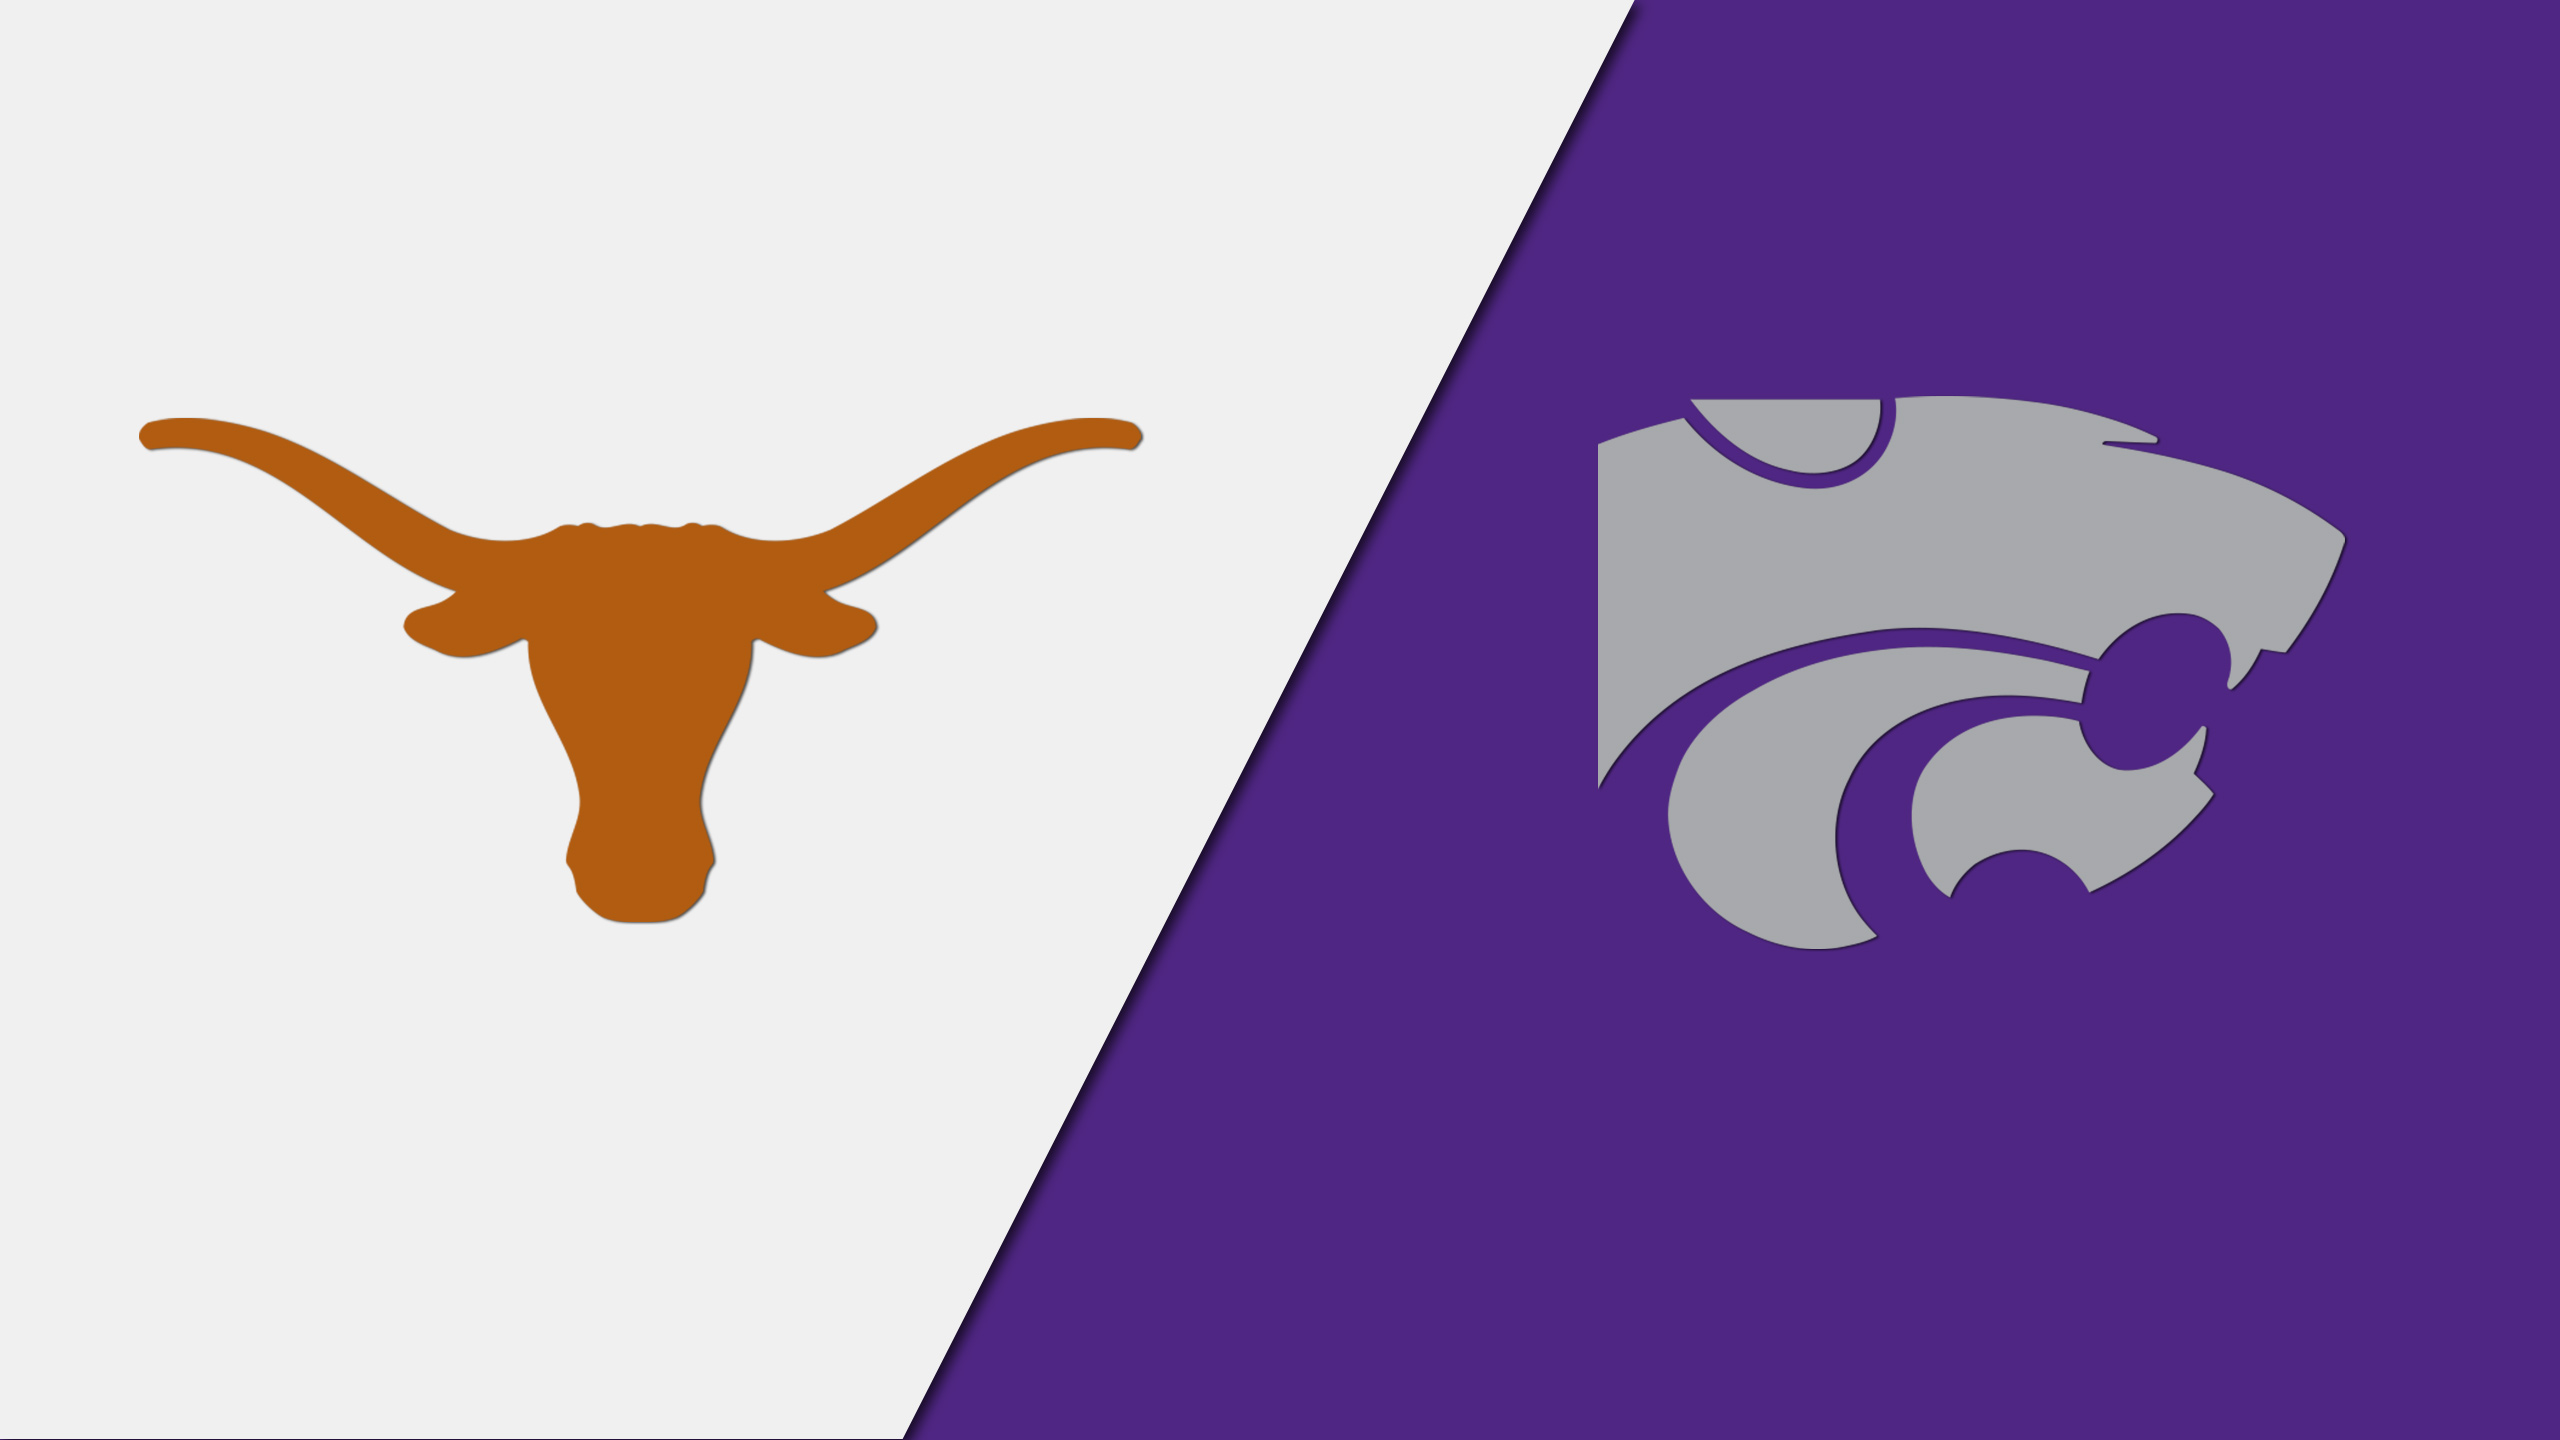 Texas Longhorns vs. Kansas State Wildcats - 02/22/2006 (re-air)